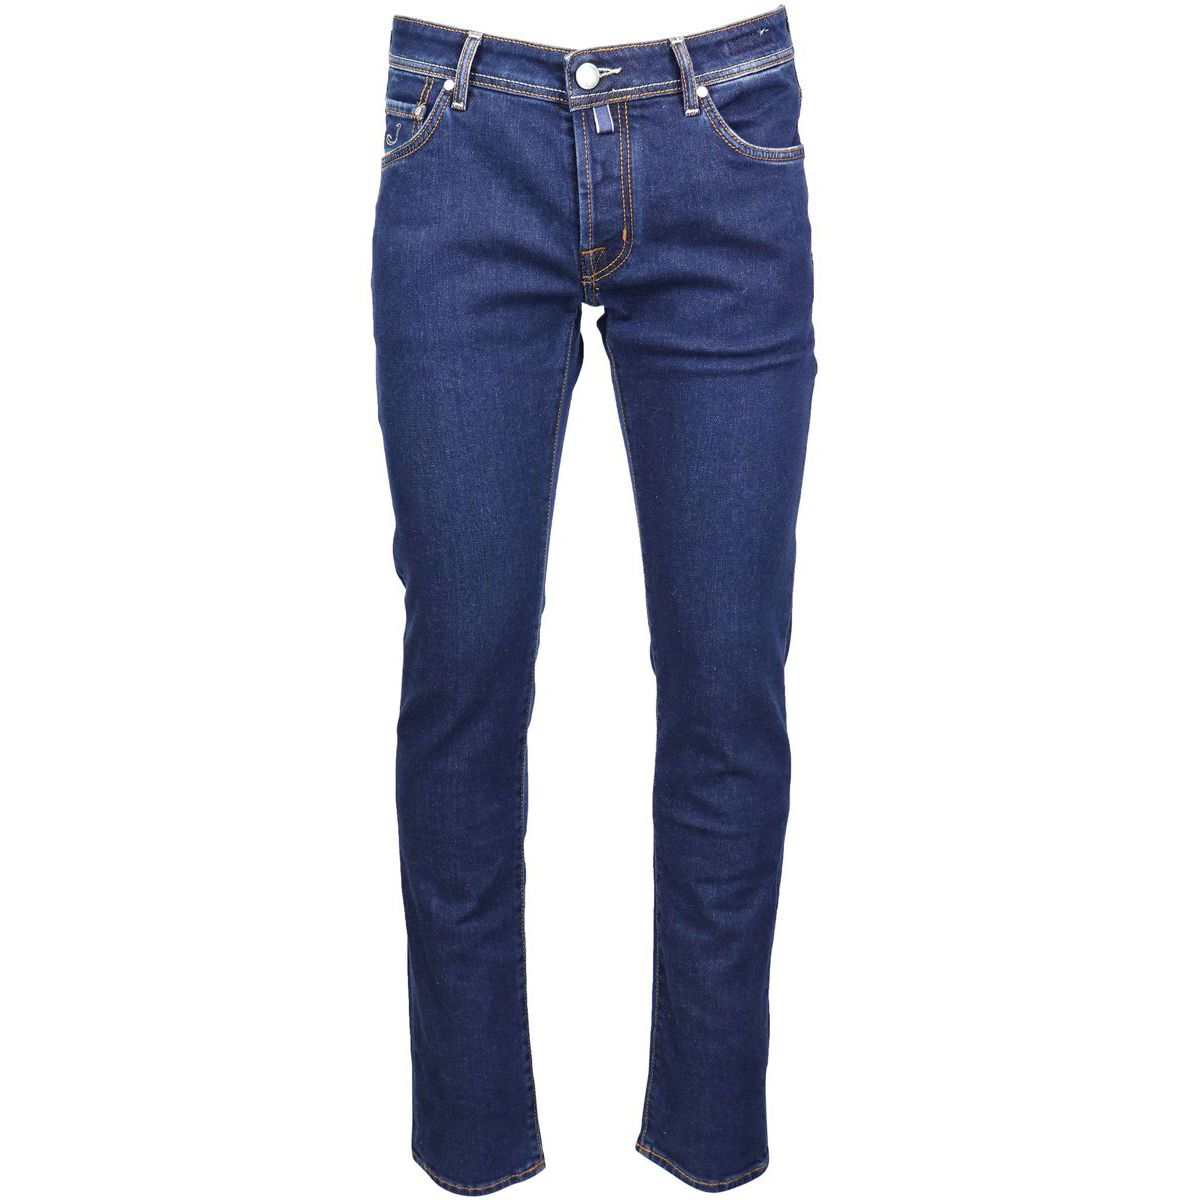 5-pocket stretch jeans in dark denim Dark denim Jacob Cohen